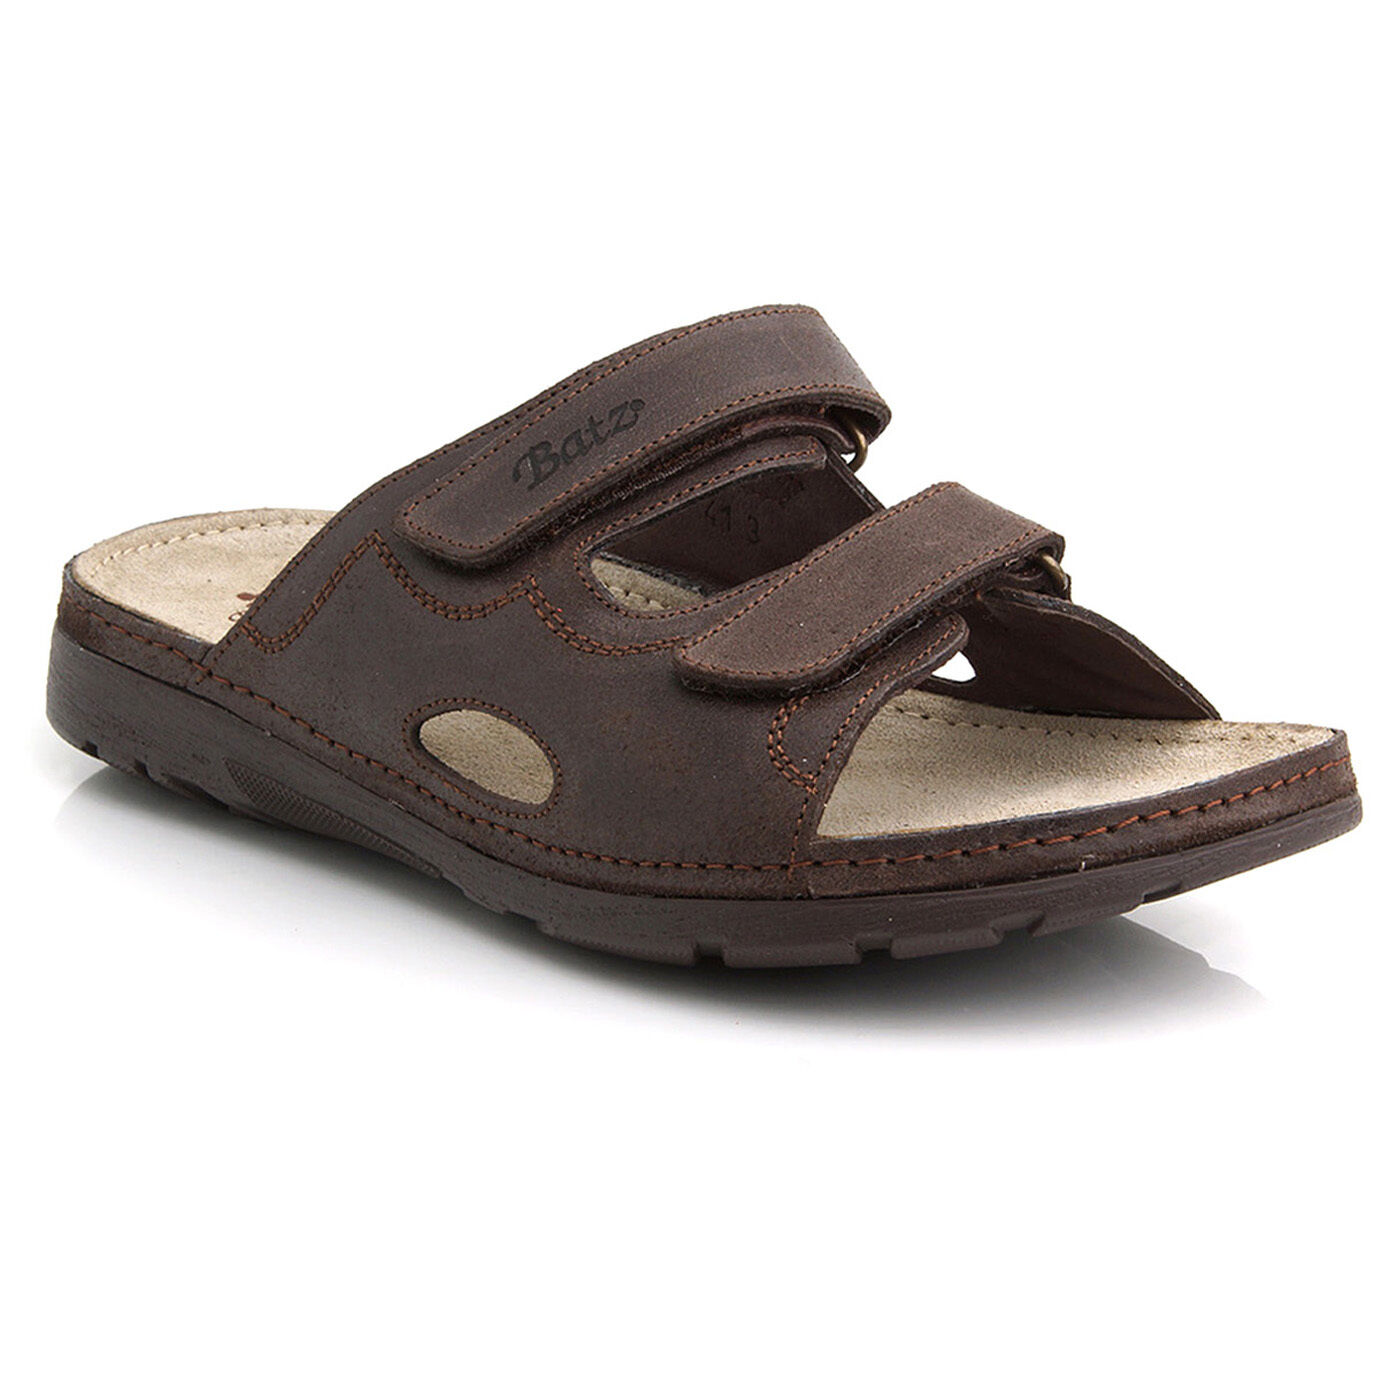 Batz MIKE Brown Top Quality Quality Quality Handmade Leather Slip-on Sandals for Men UK 7.5 - 11 3f5241